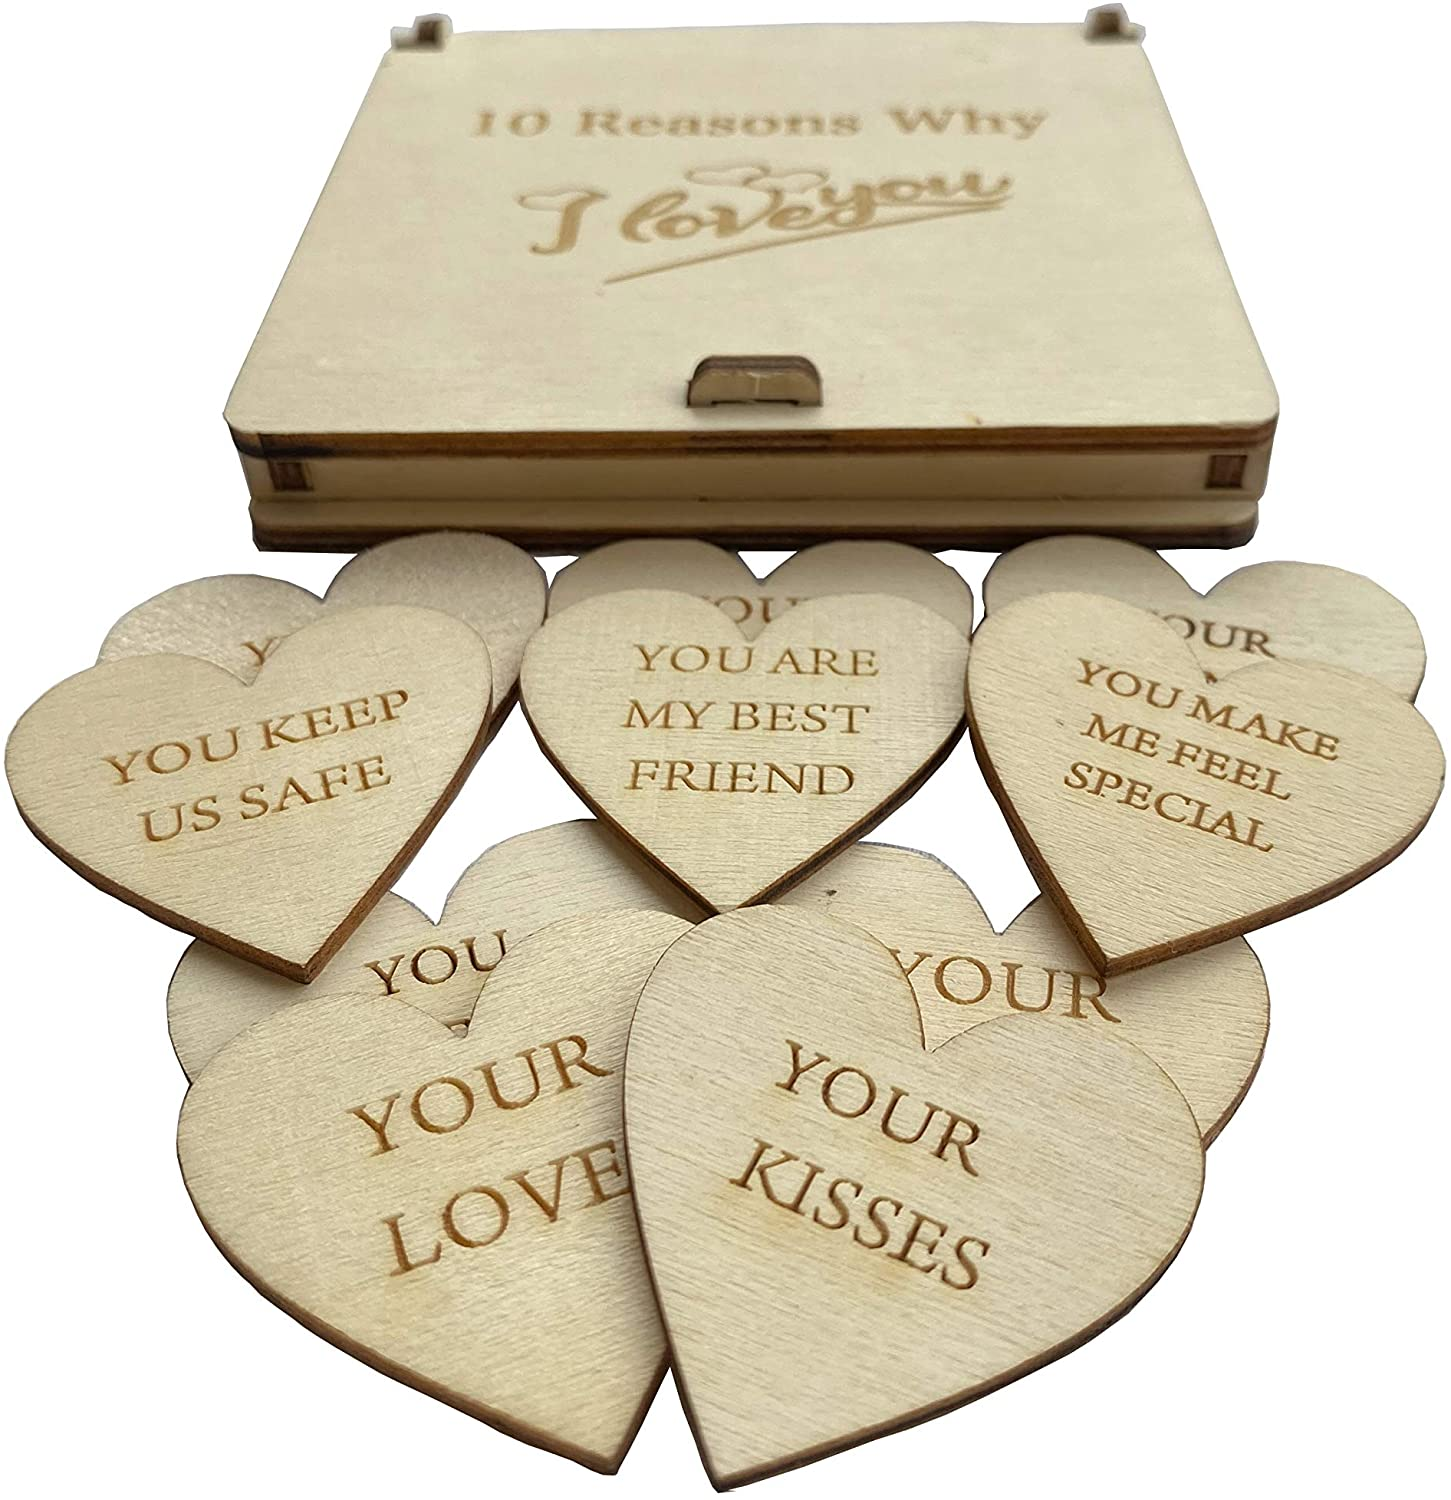 Valentine's day gift for her - wooden hearts